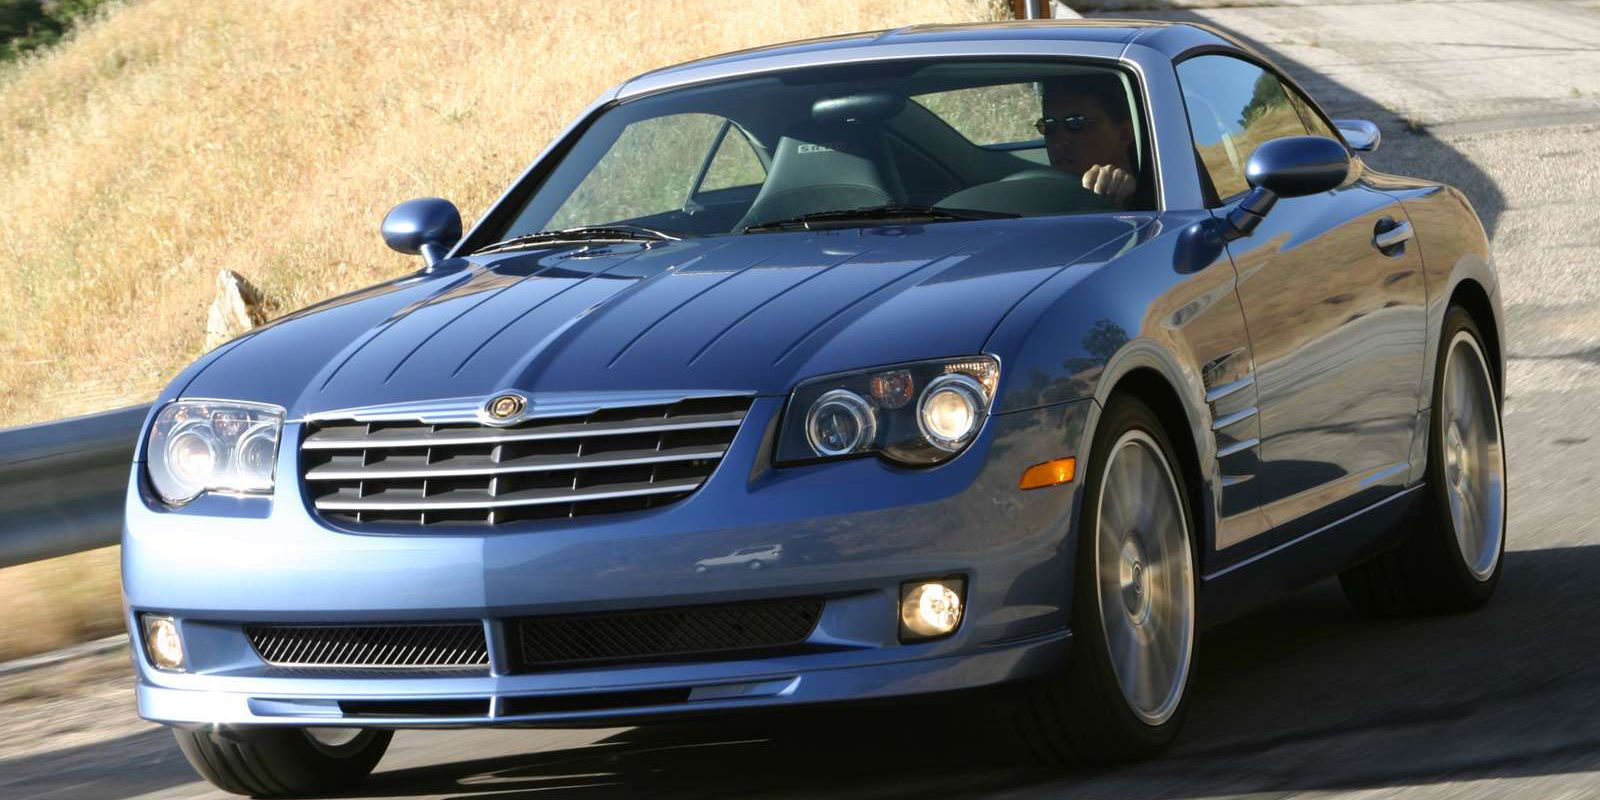 """<p><a href=""""http://www.roadandtrack.com/new-cars/reviews/a9675/2004-chrysler-crossfire-1/"""" target=""""_blank"""" data-tracking-id=""""recirc-text-link"""">The Chrysler Crossfire</a>, while mildly different from its Mercedes-Benz SLK underpinnings, still shares drivetrains and a platform with the German roadster. But unlike its European sibling, this car could be had with a fixed roof hardtop.</p>"""